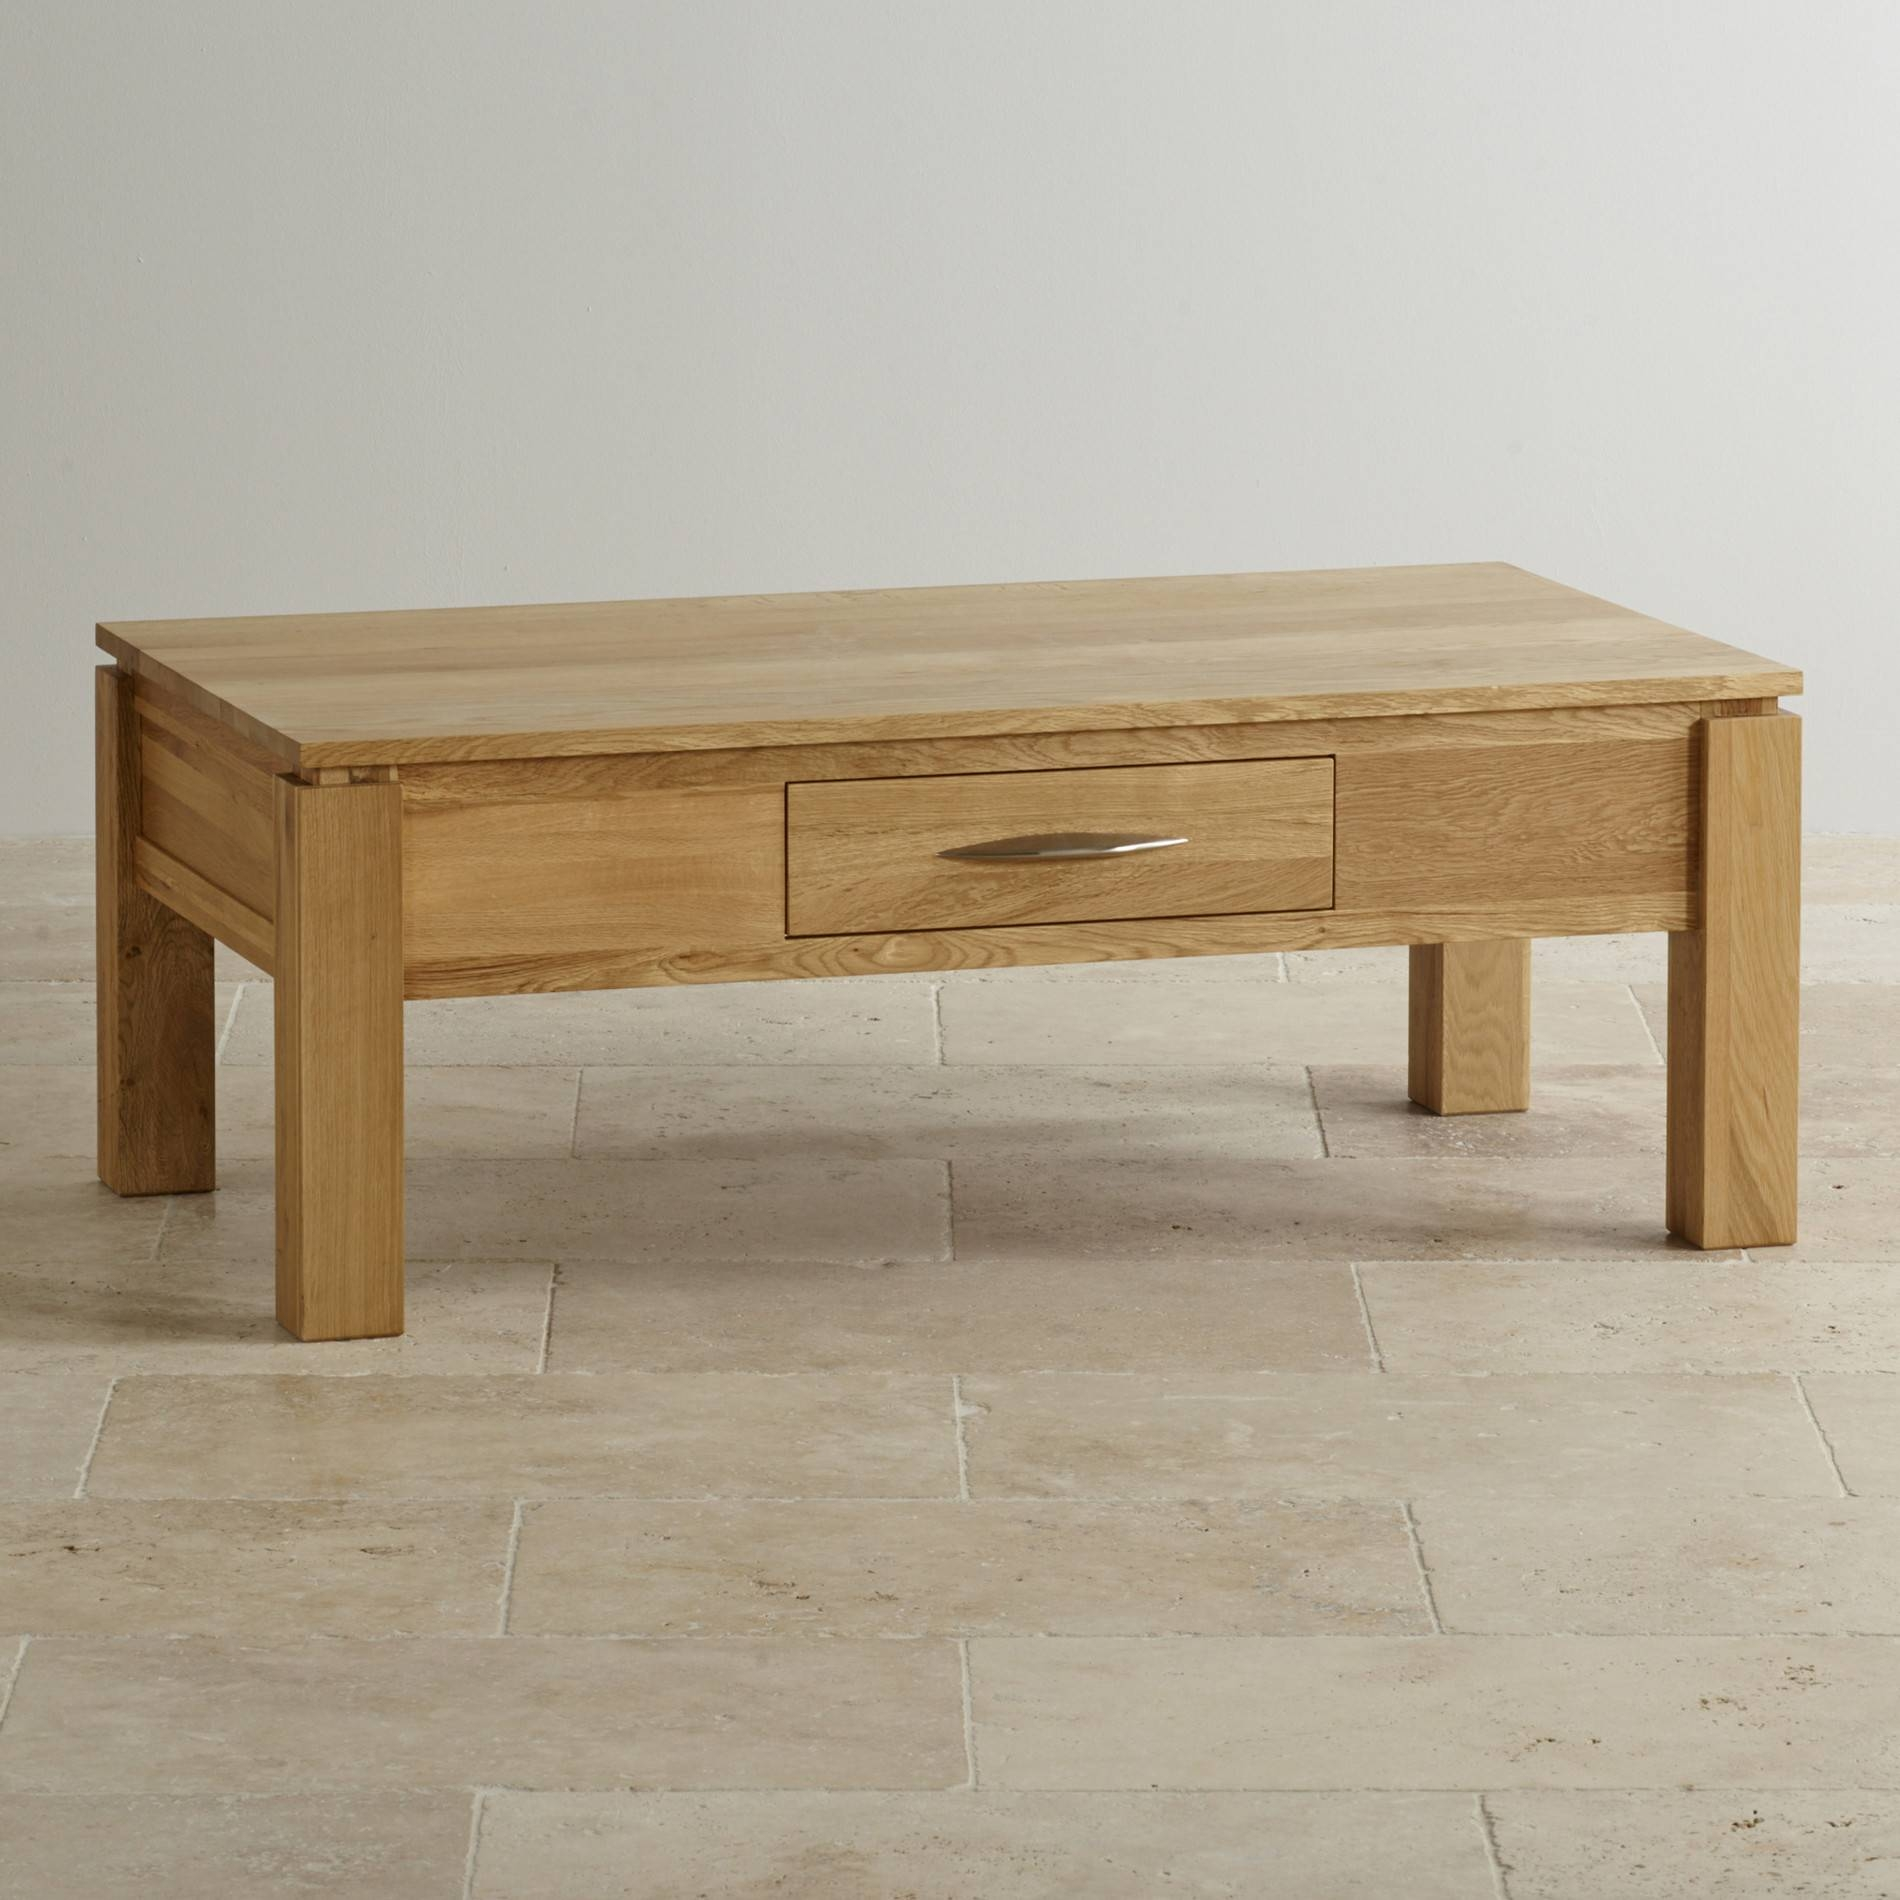 Galway Large Coffee Table In Solid Oak | Oak Furniture Land with Oak Coffee Tables With Storage (Image 5 of 15)